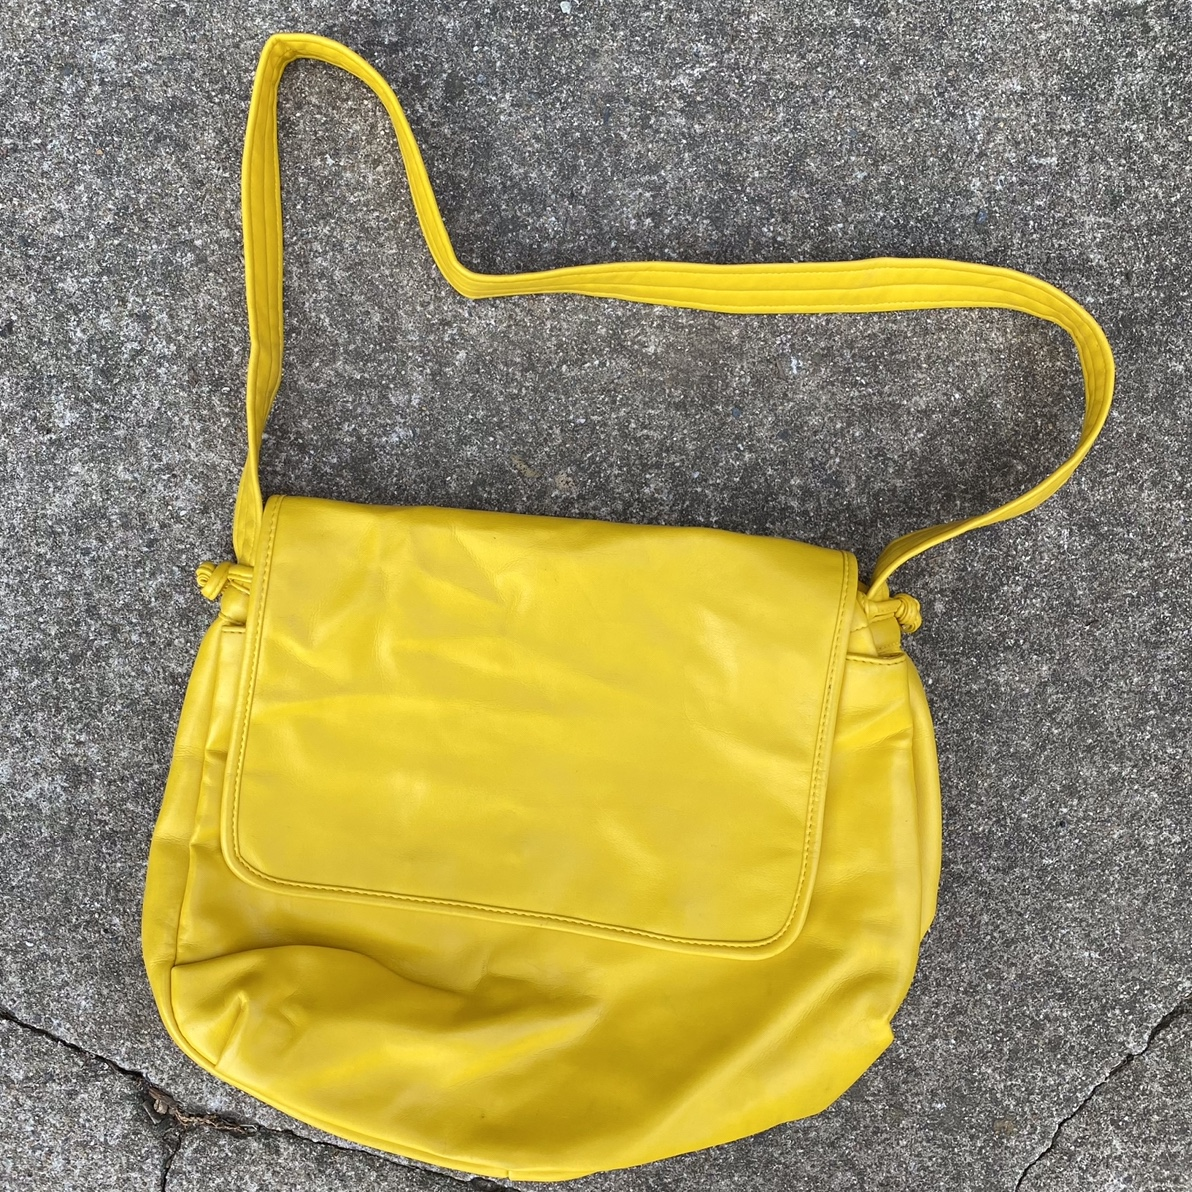 Product Image 1 - Vintage 80s yellow leather shoulder